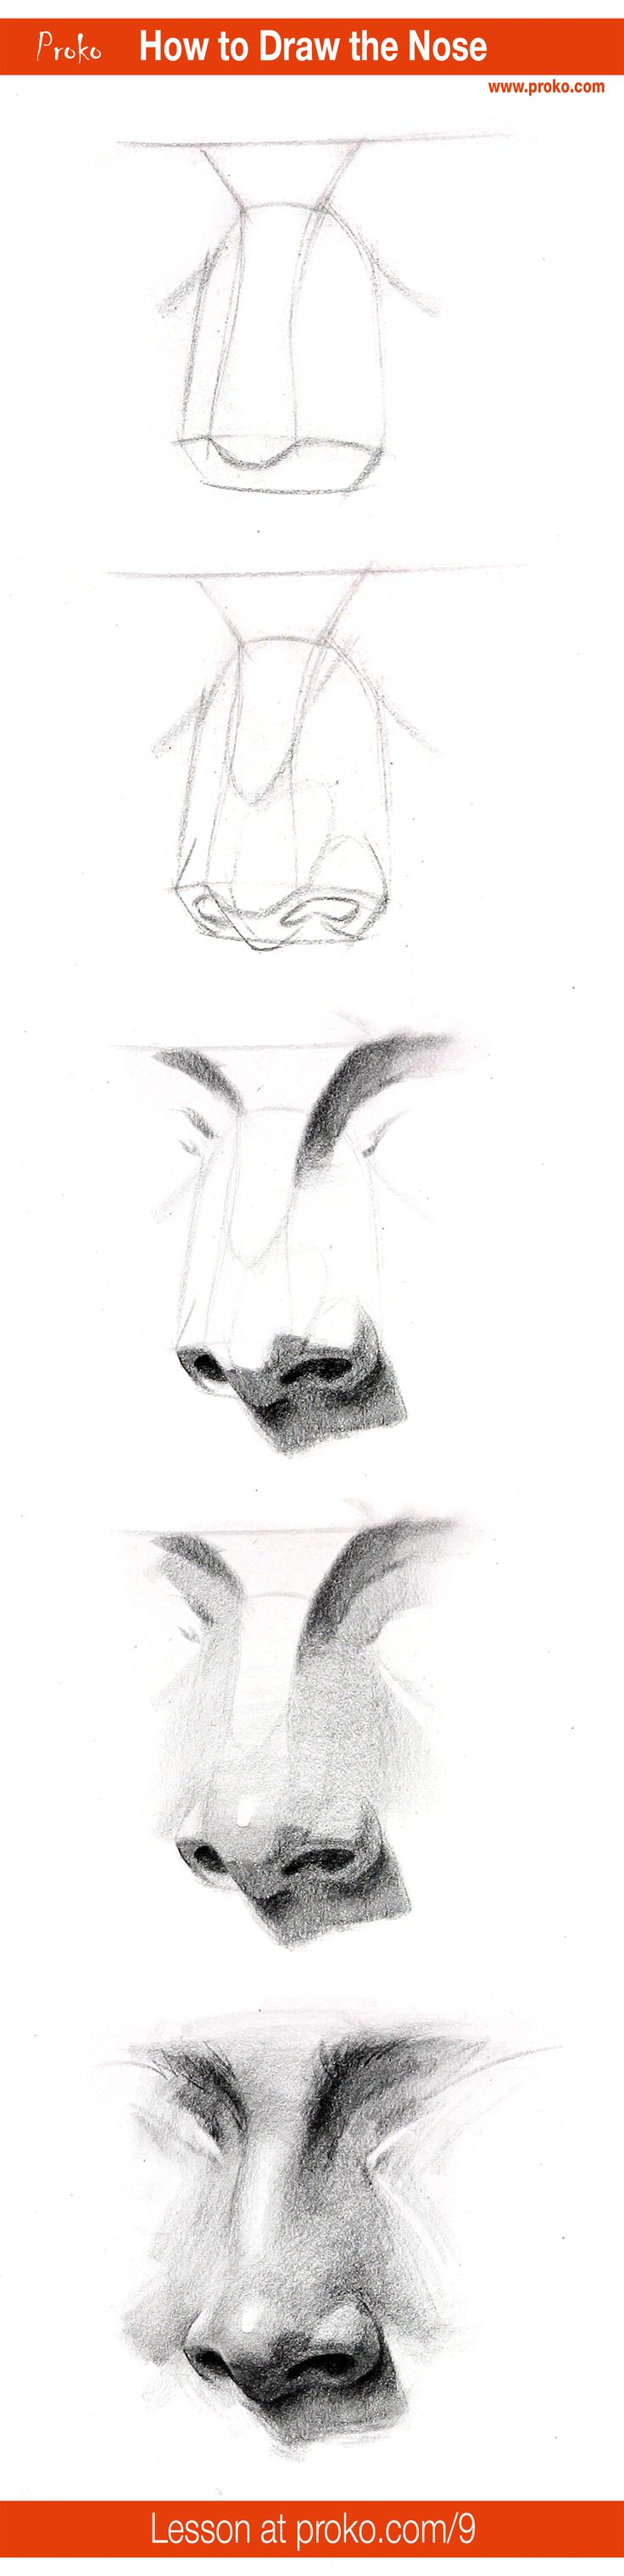 Draw A Realistic Nose With This Stepbystep Instruction Full Drawing  Lesson